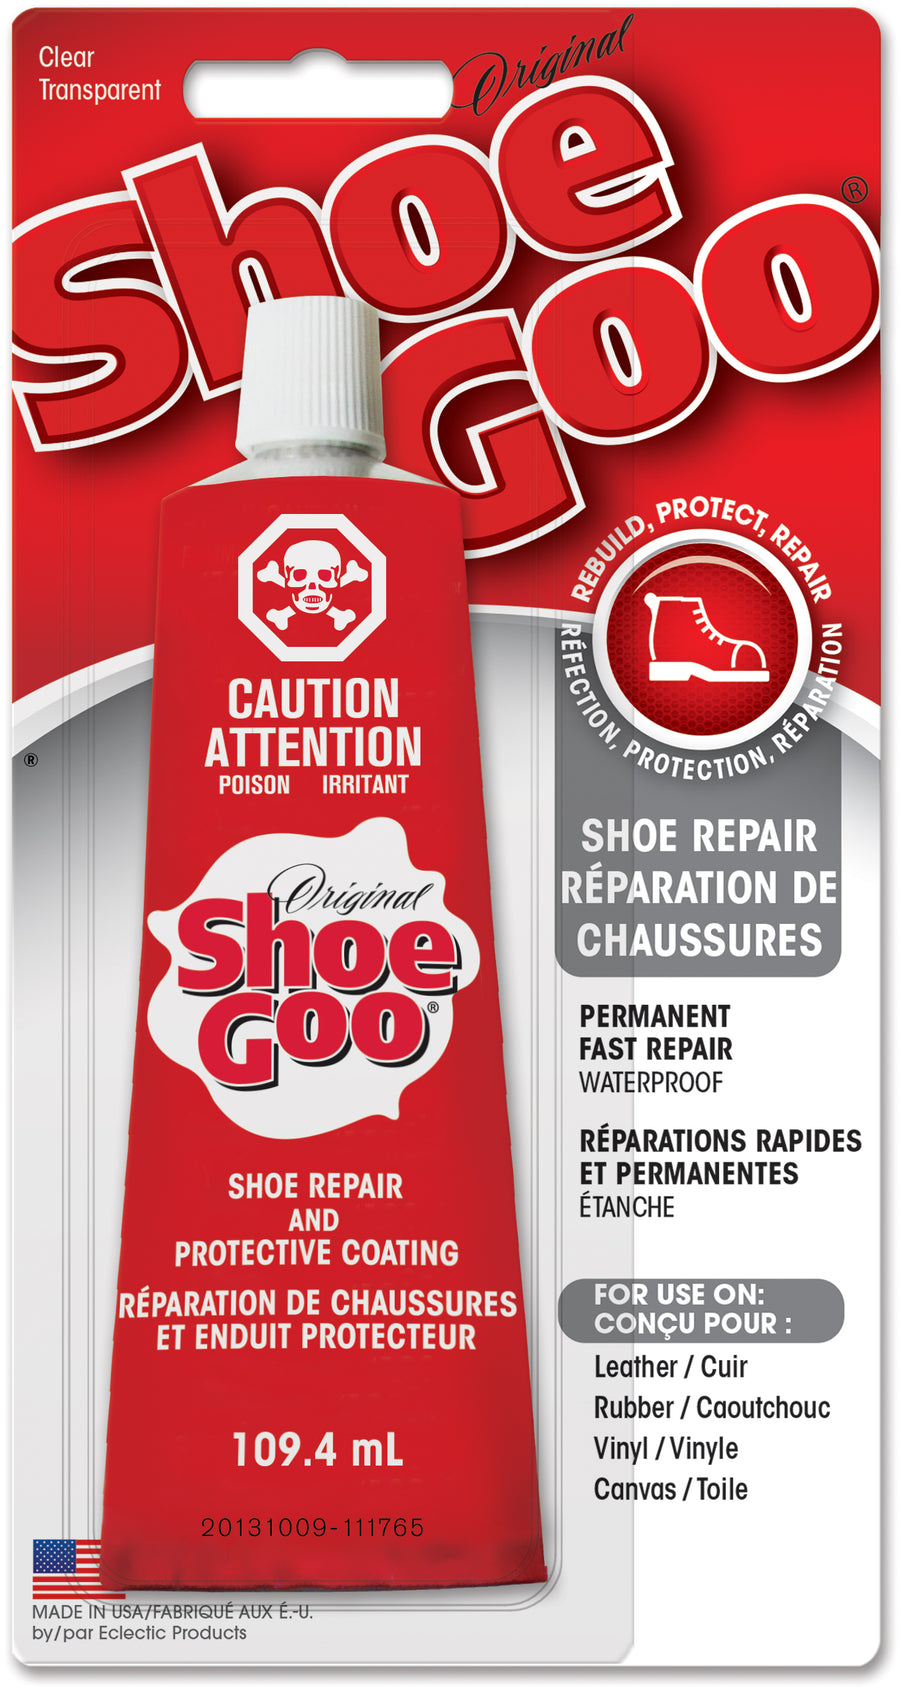 SHOE GOO - Seo Optimizer Test